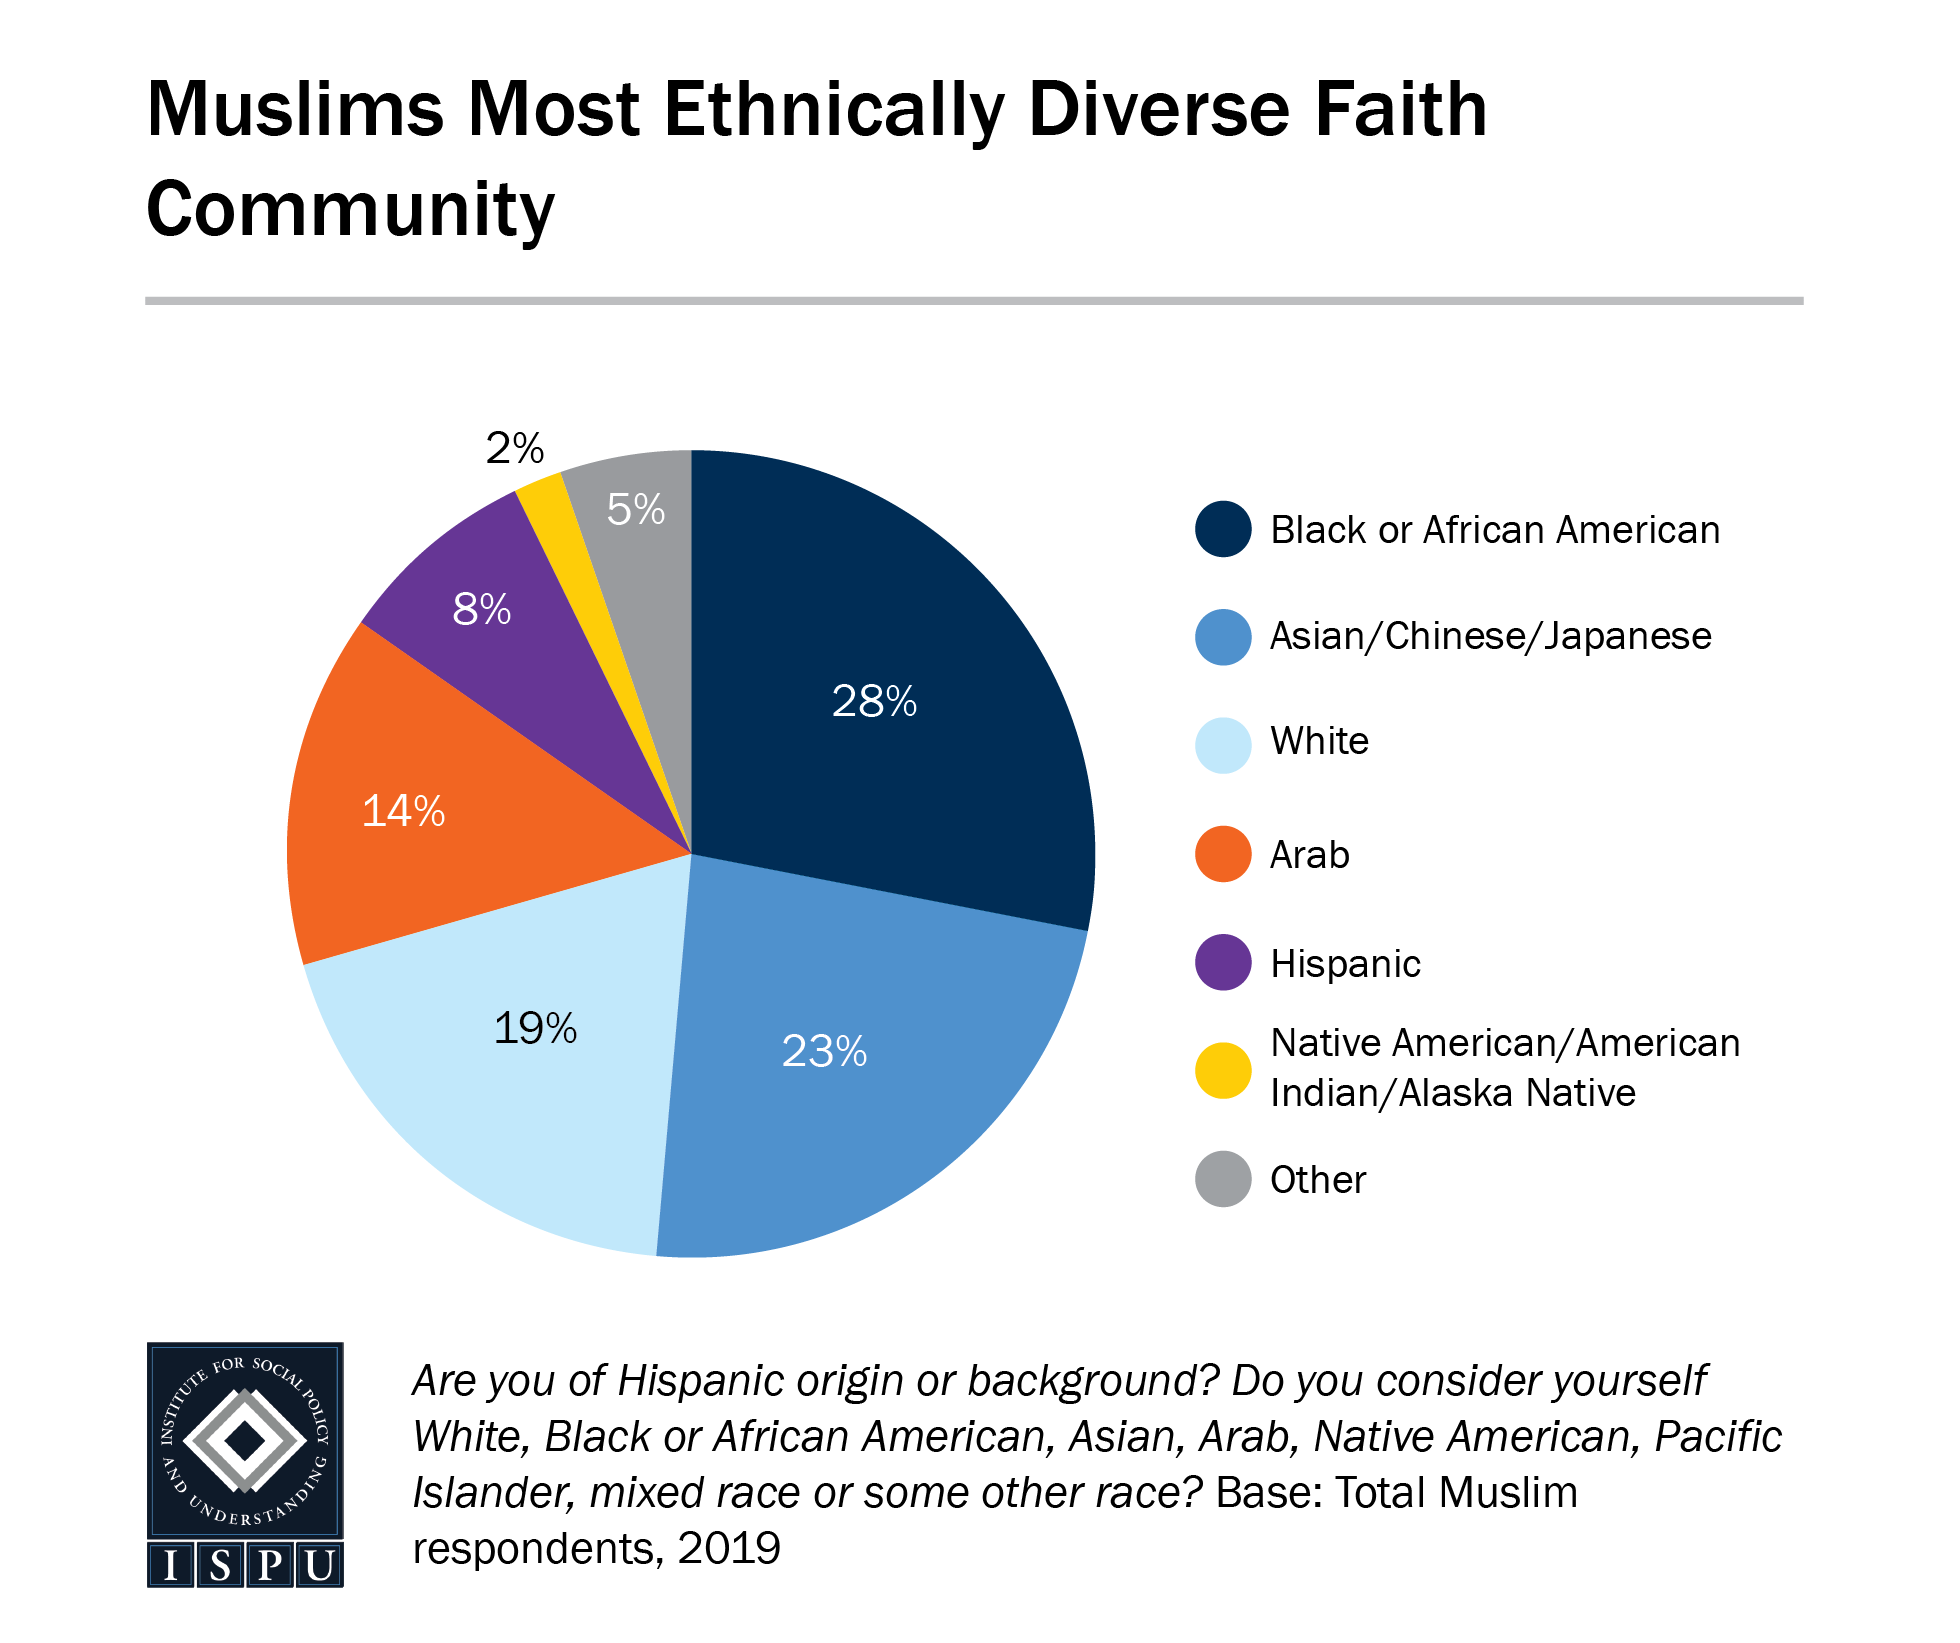 A pie graph showing that Muslims are the most ethnically diverse faith community